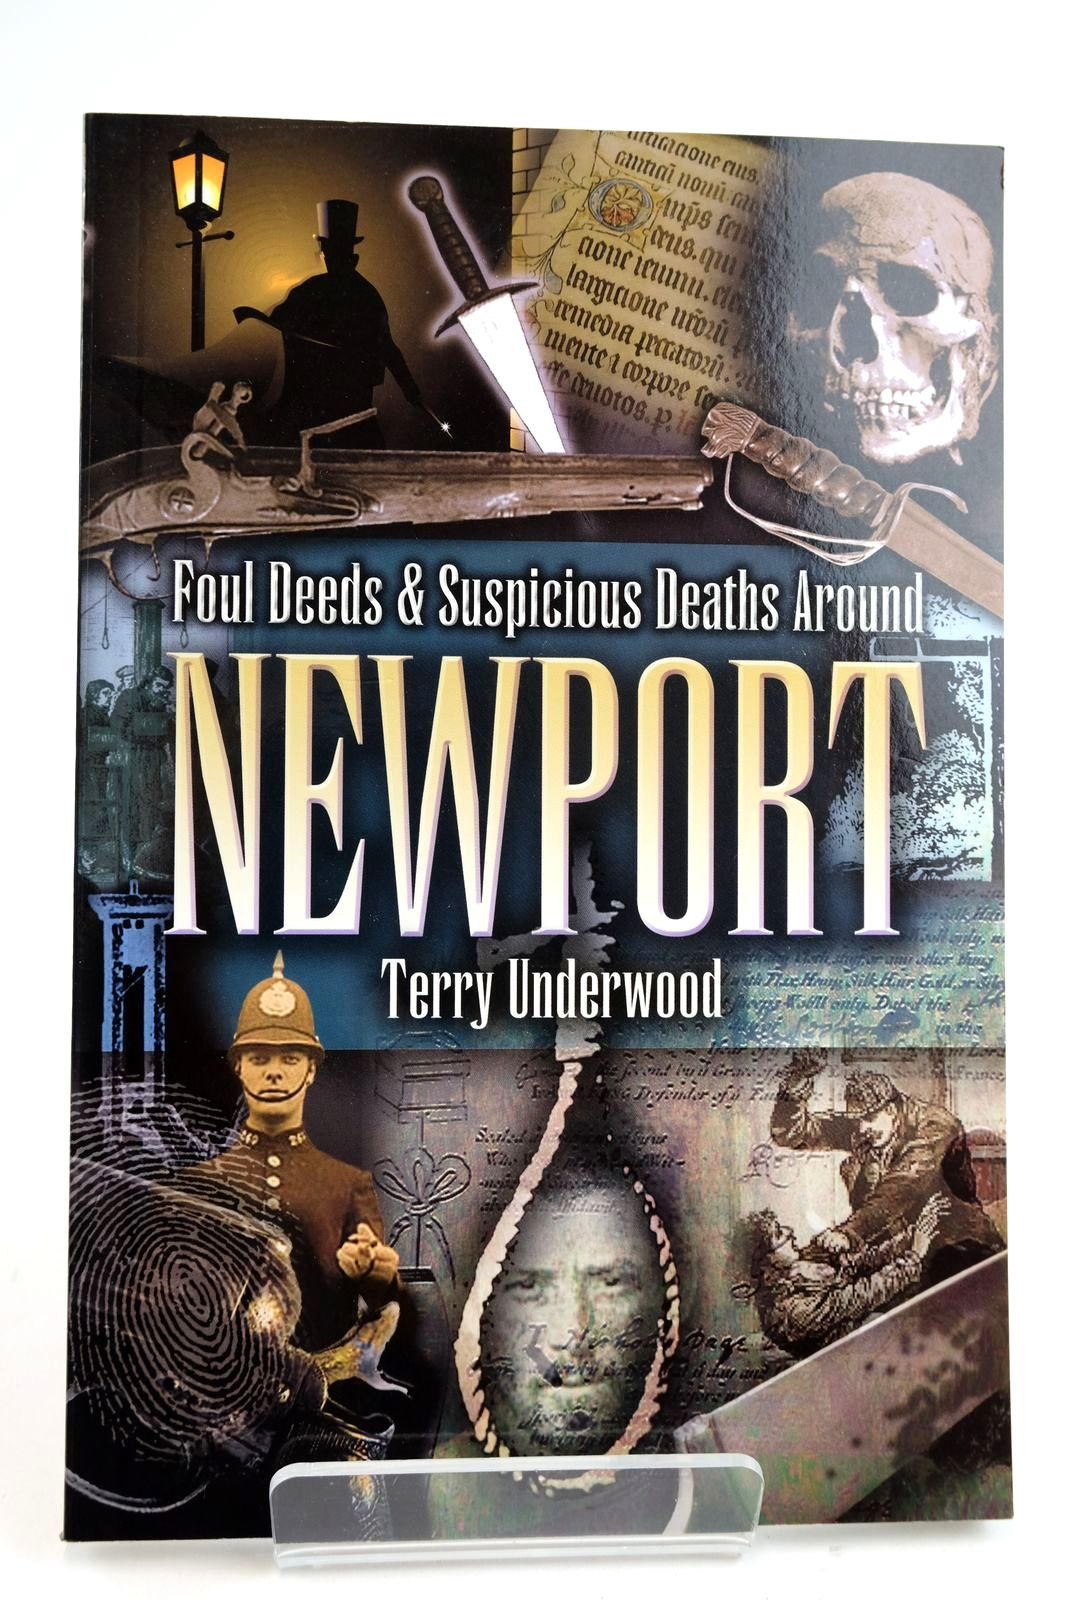 Photo of FOUL DEEDS & SUSPICIOUS DEATHS AROUND NEWPORT written by Underwood, Terry published by Wharncliffe Books (STOCK CODE: 2133086)  for sale by Stella & Rose's Books